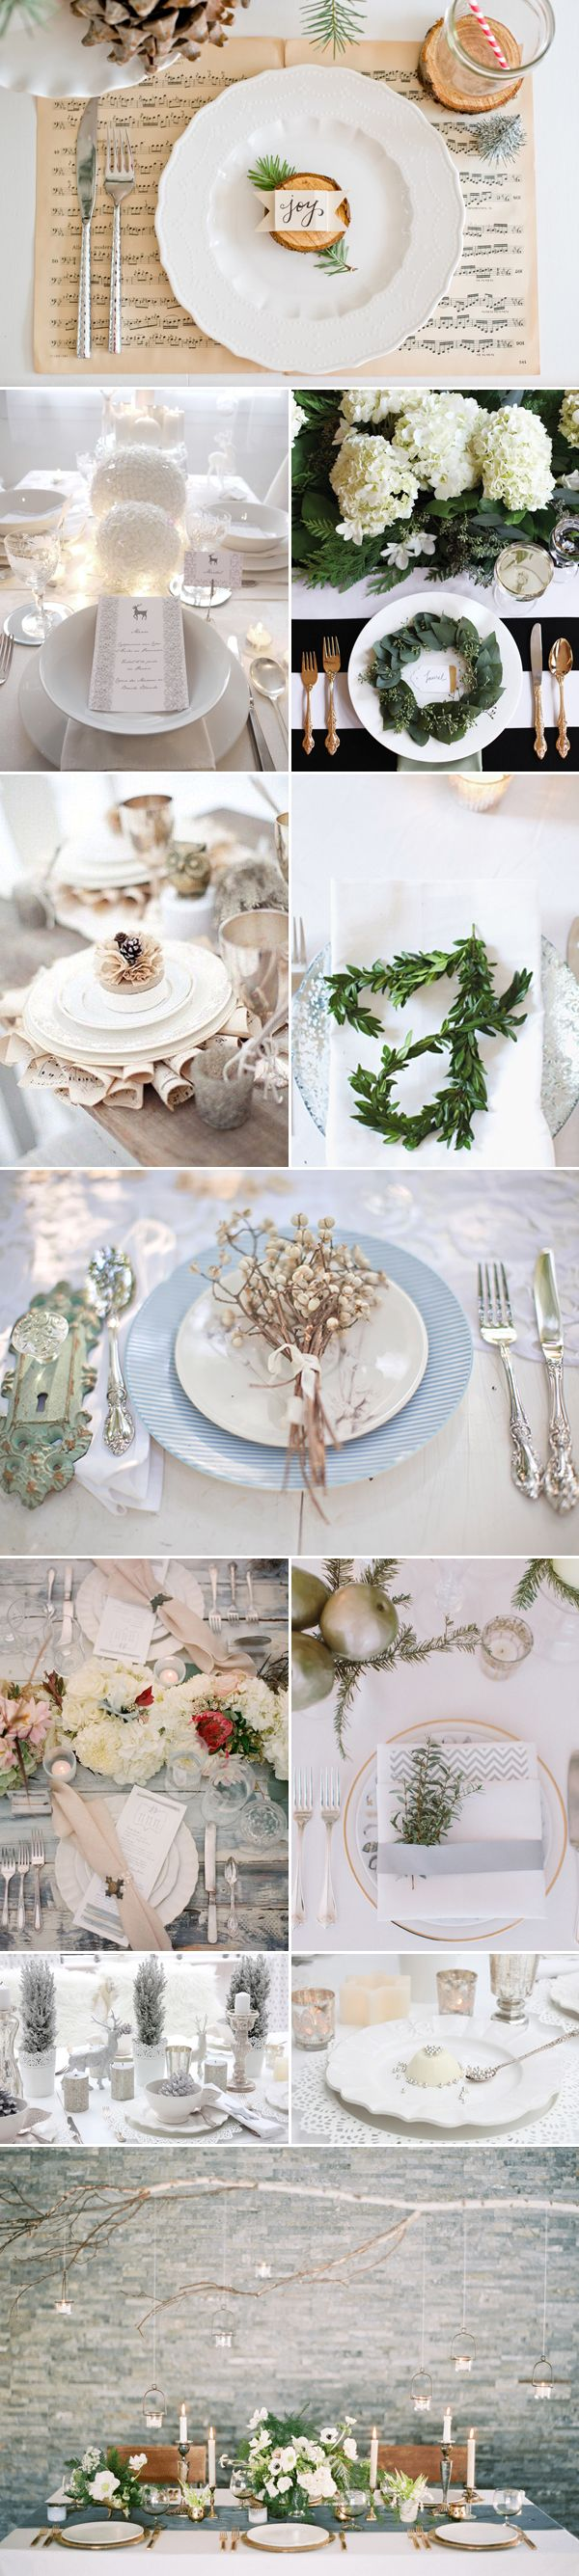 1000 Ideas About Table Place Settings On Pinterest